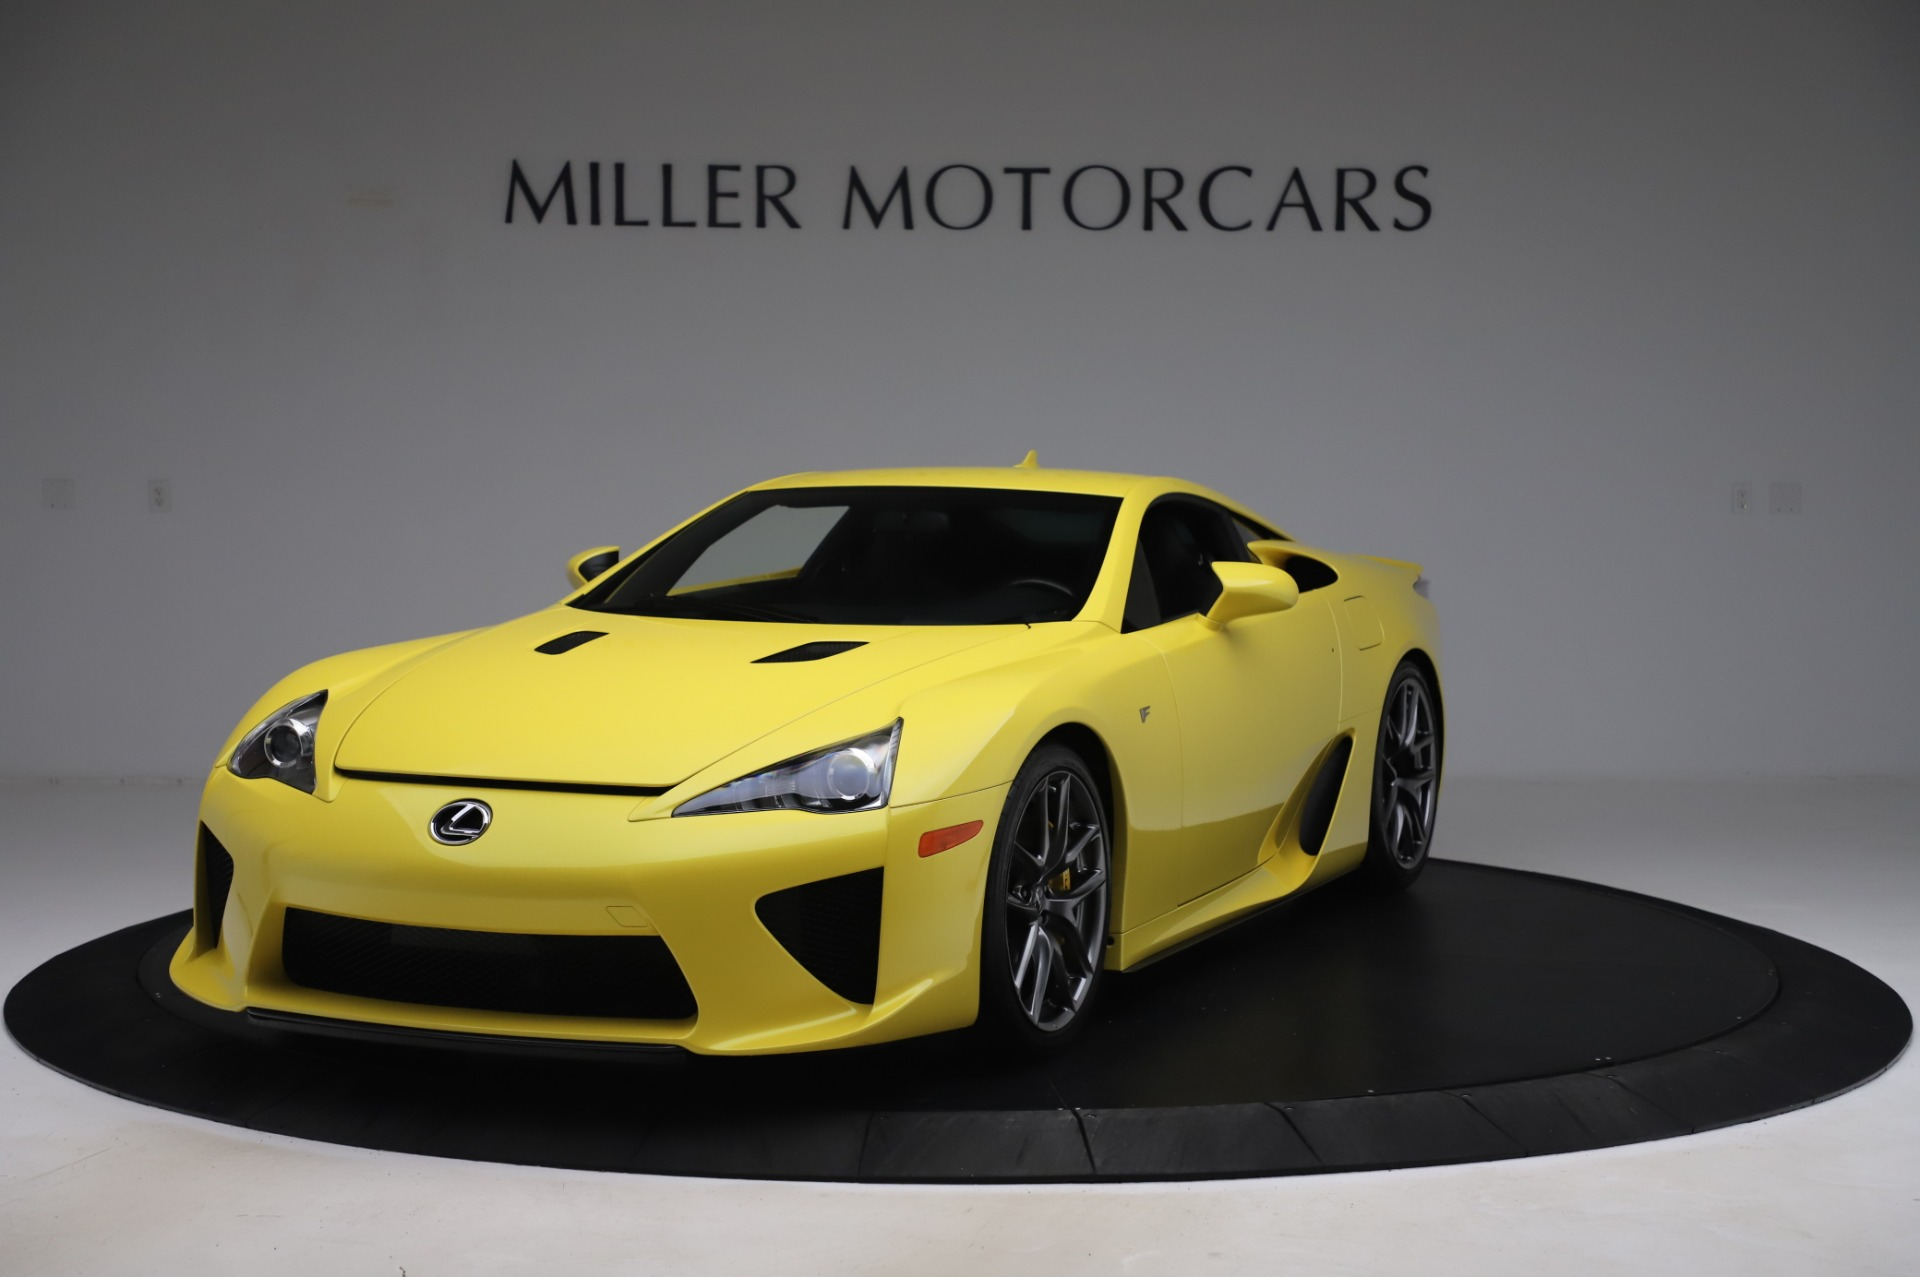 Used 2012 Lexus LFA for sale $509,900 at Aston Martin of Greenwich in Greenwich CT 06830 1